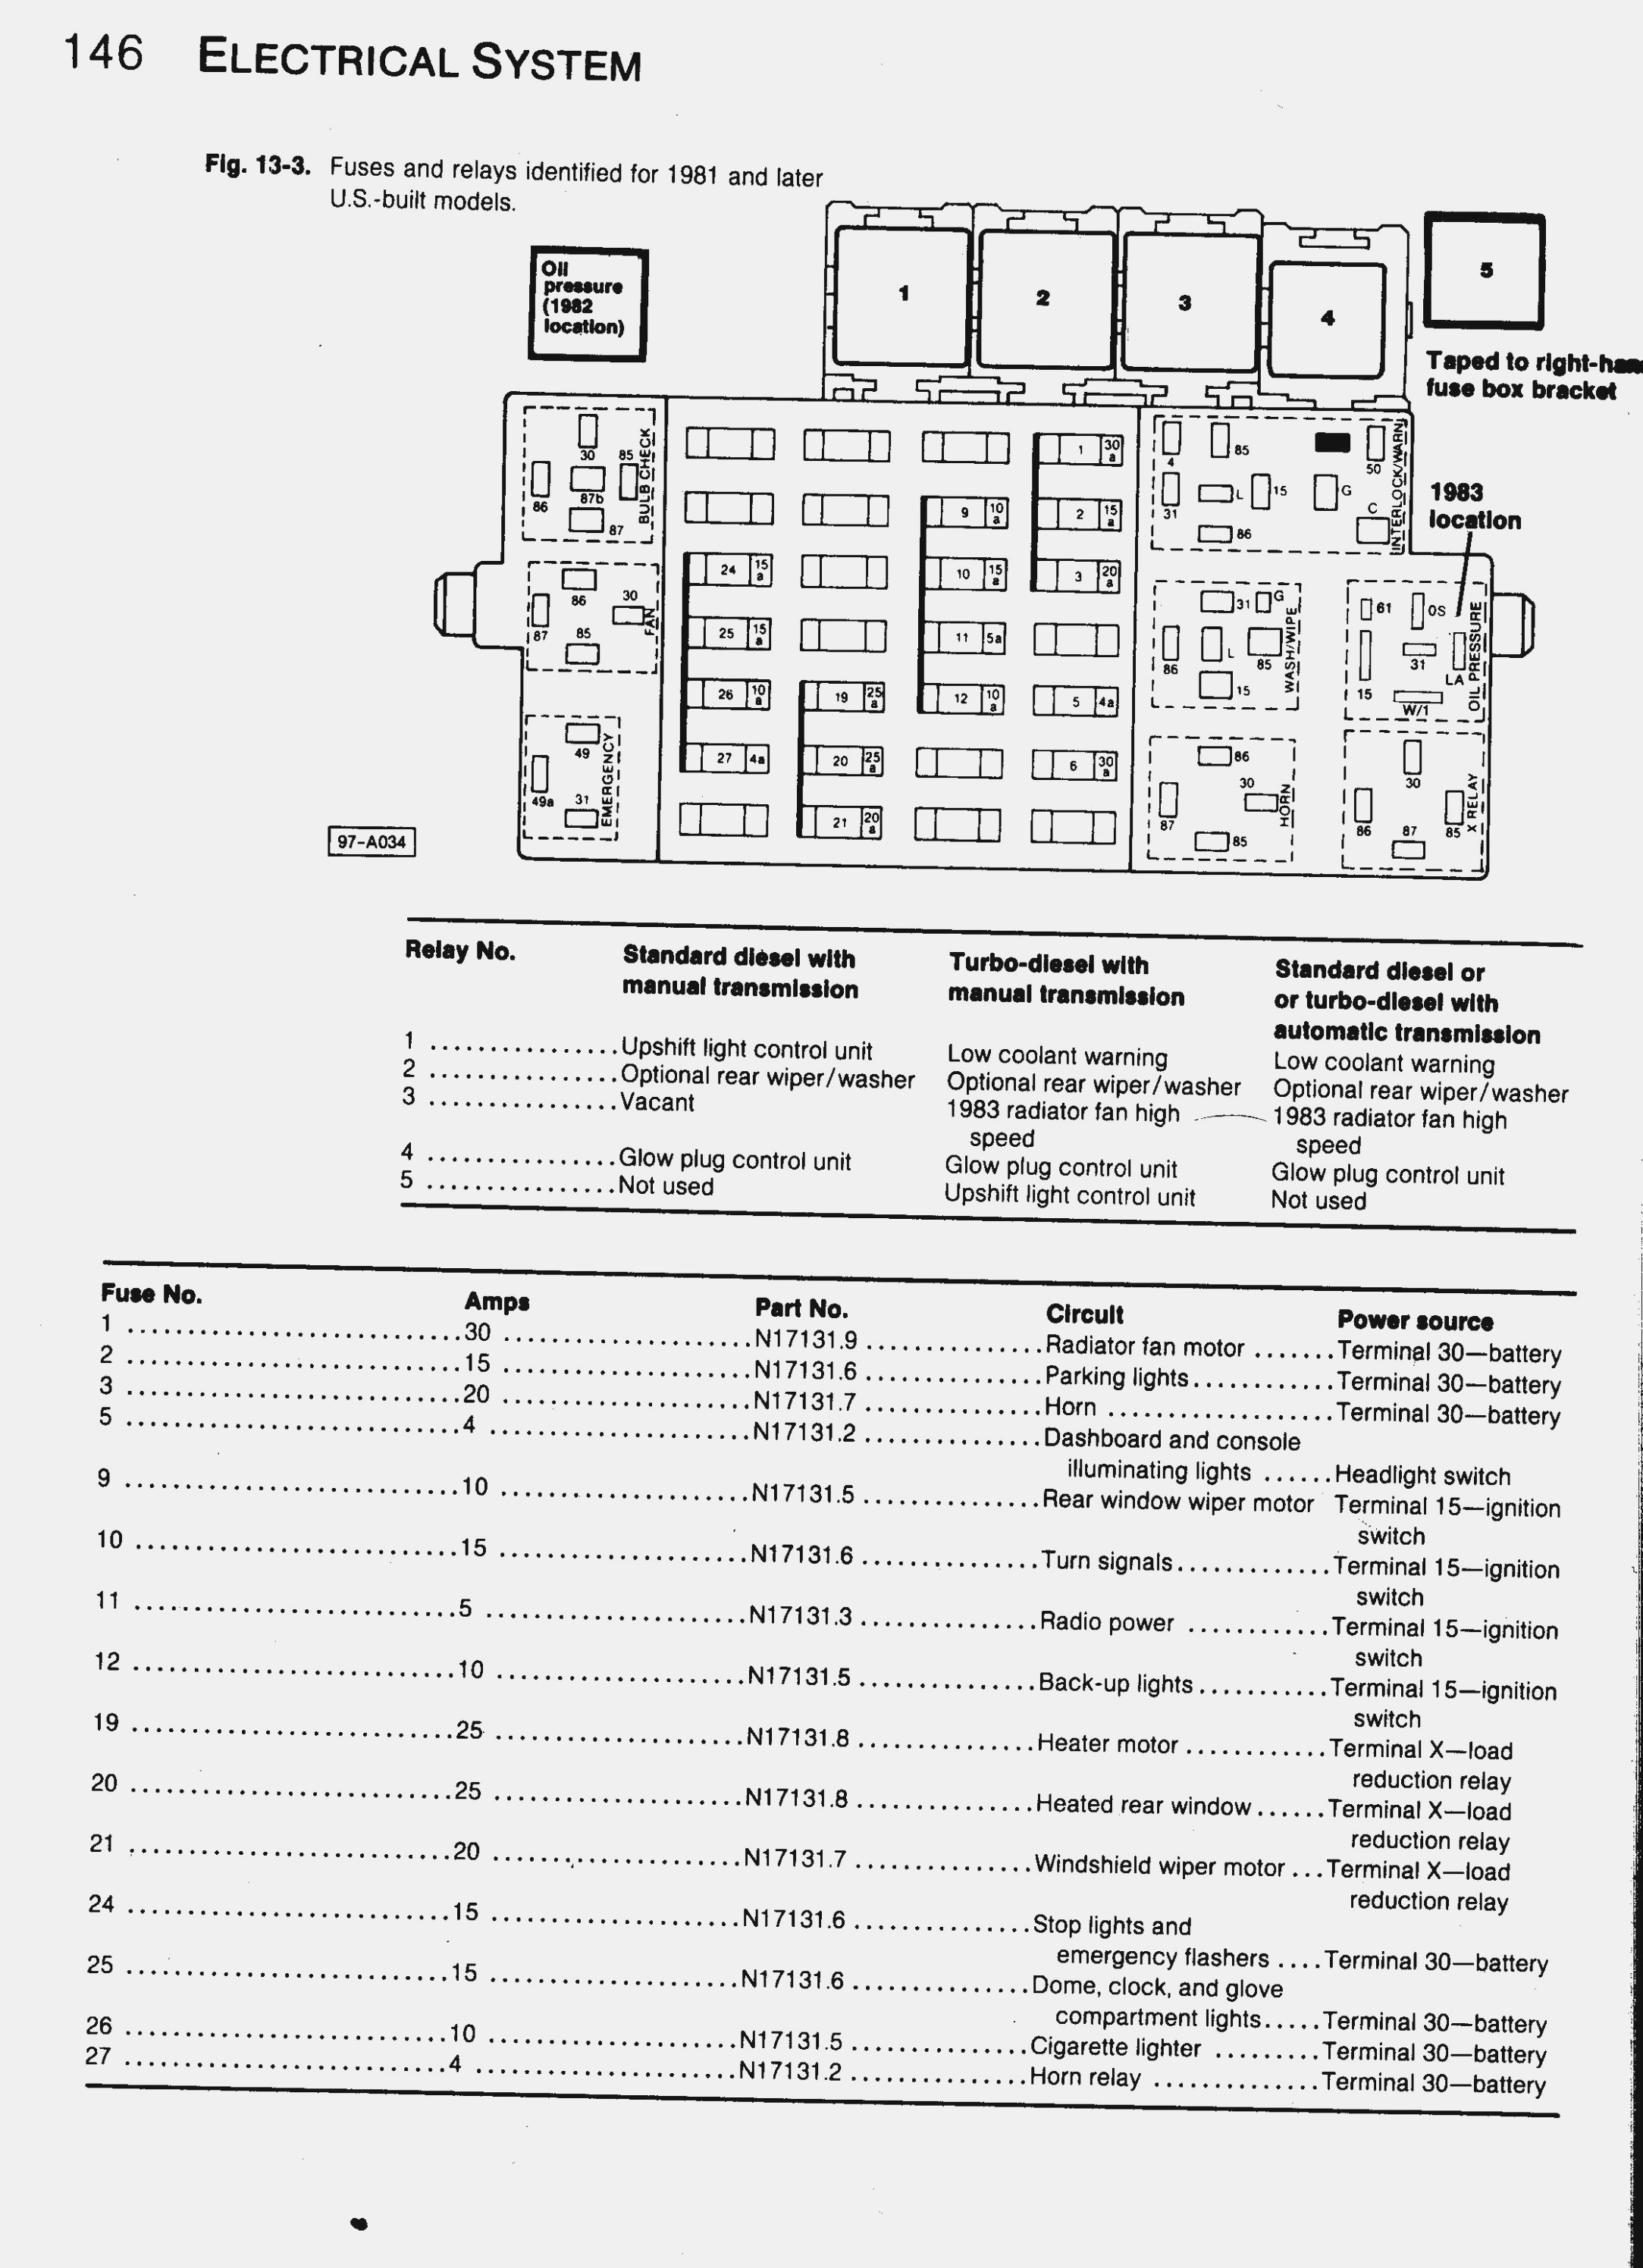 3300 International Fuse Box Diagram